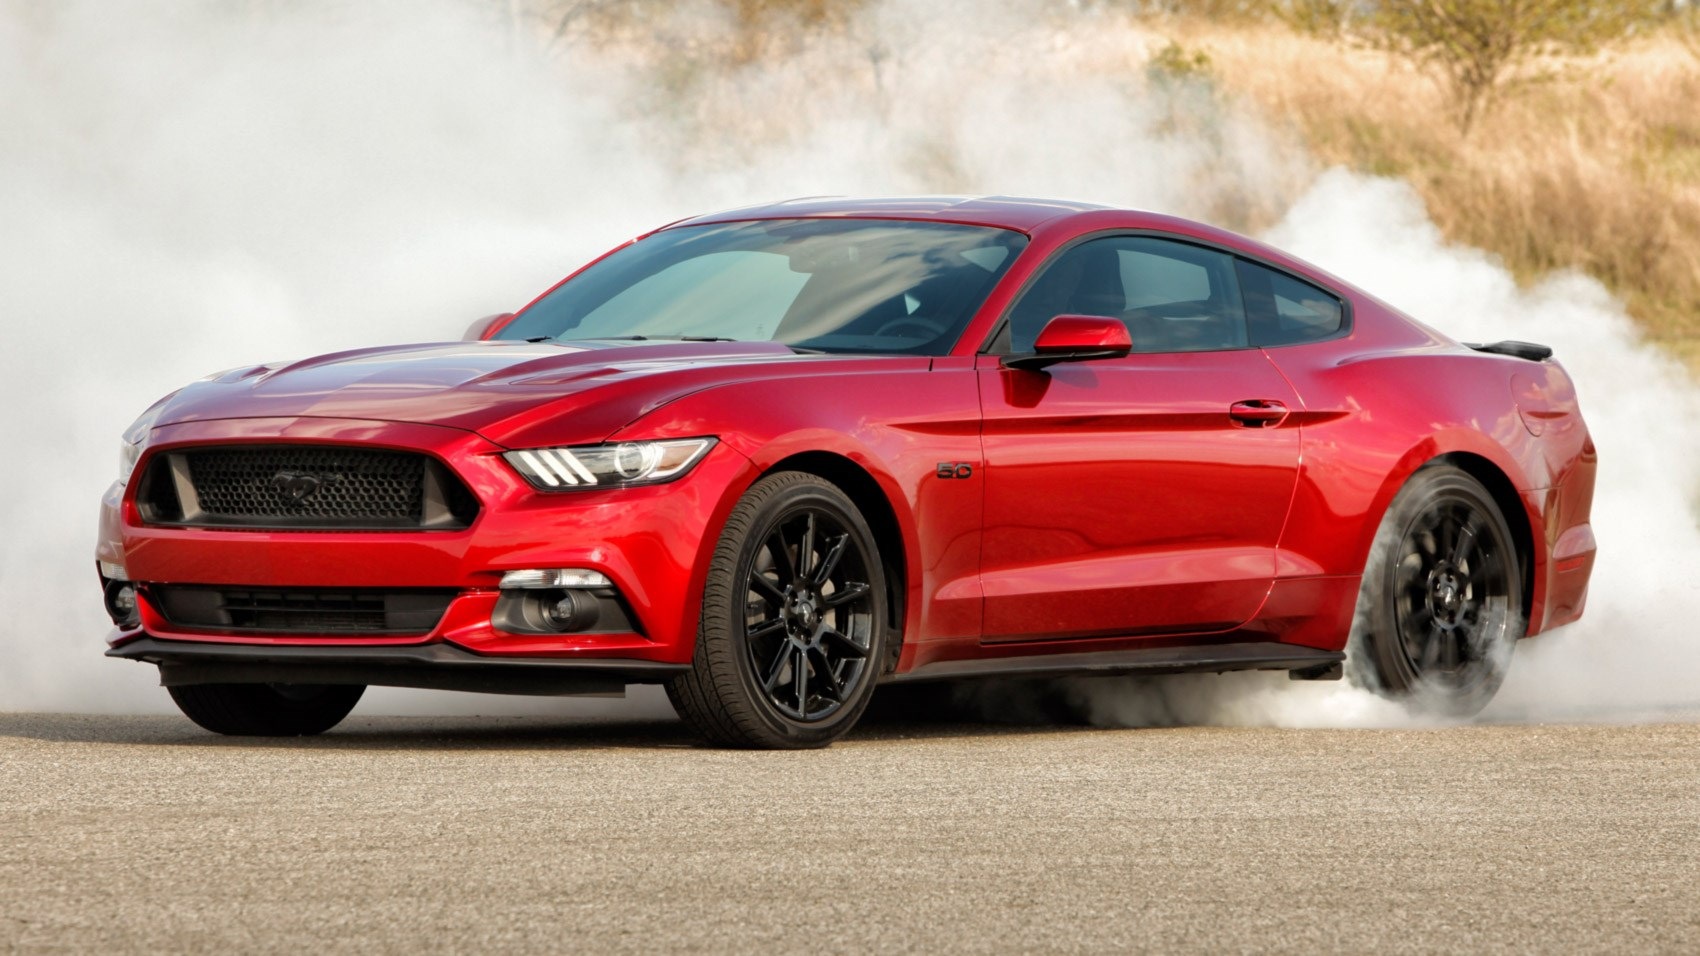 Ford Mustang Most Popular Car in the World